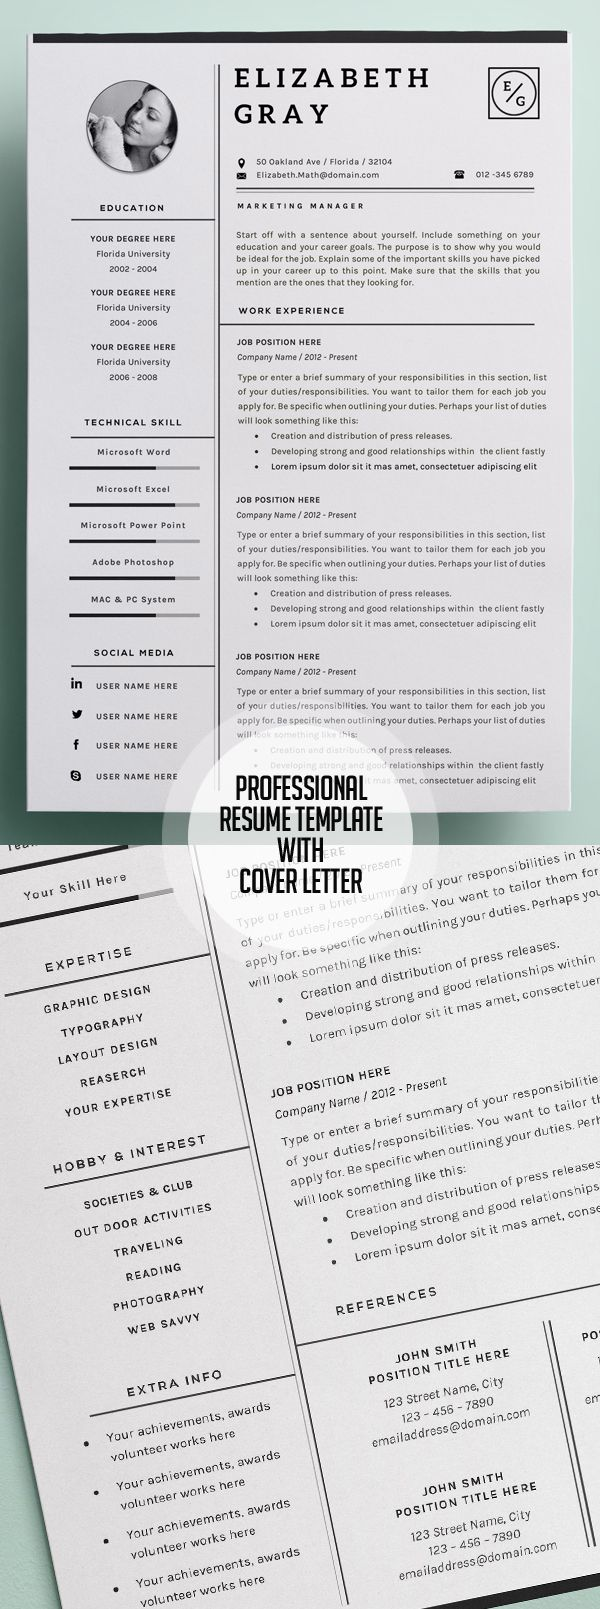 Opposenewapstandardsus  Pleasing  Resume Ideas On Pinterest  Resume Resume Templates And  With Engaging Professional And Modern Resume Template With Page Cover Cvtemplate With Endearing Microsoft Office Resume Templates Also Resume Objectives Examples In Addition Resume Format  And Waitress Resume As Well As Resume Header Additionally Difference Between Cv And Resume From Pinterestcom With Opposenewapstandardsus  Engaging  Resume Ideas On Pinterest  Resume Resume Templates And  With Endearing Professional And Modern Resume Template With Page Cover Cvtemplate And Pleasing Microsoft Office Resume Templates Also Resume Objectives Examples In Addition Resume Format  From Pinterestcom